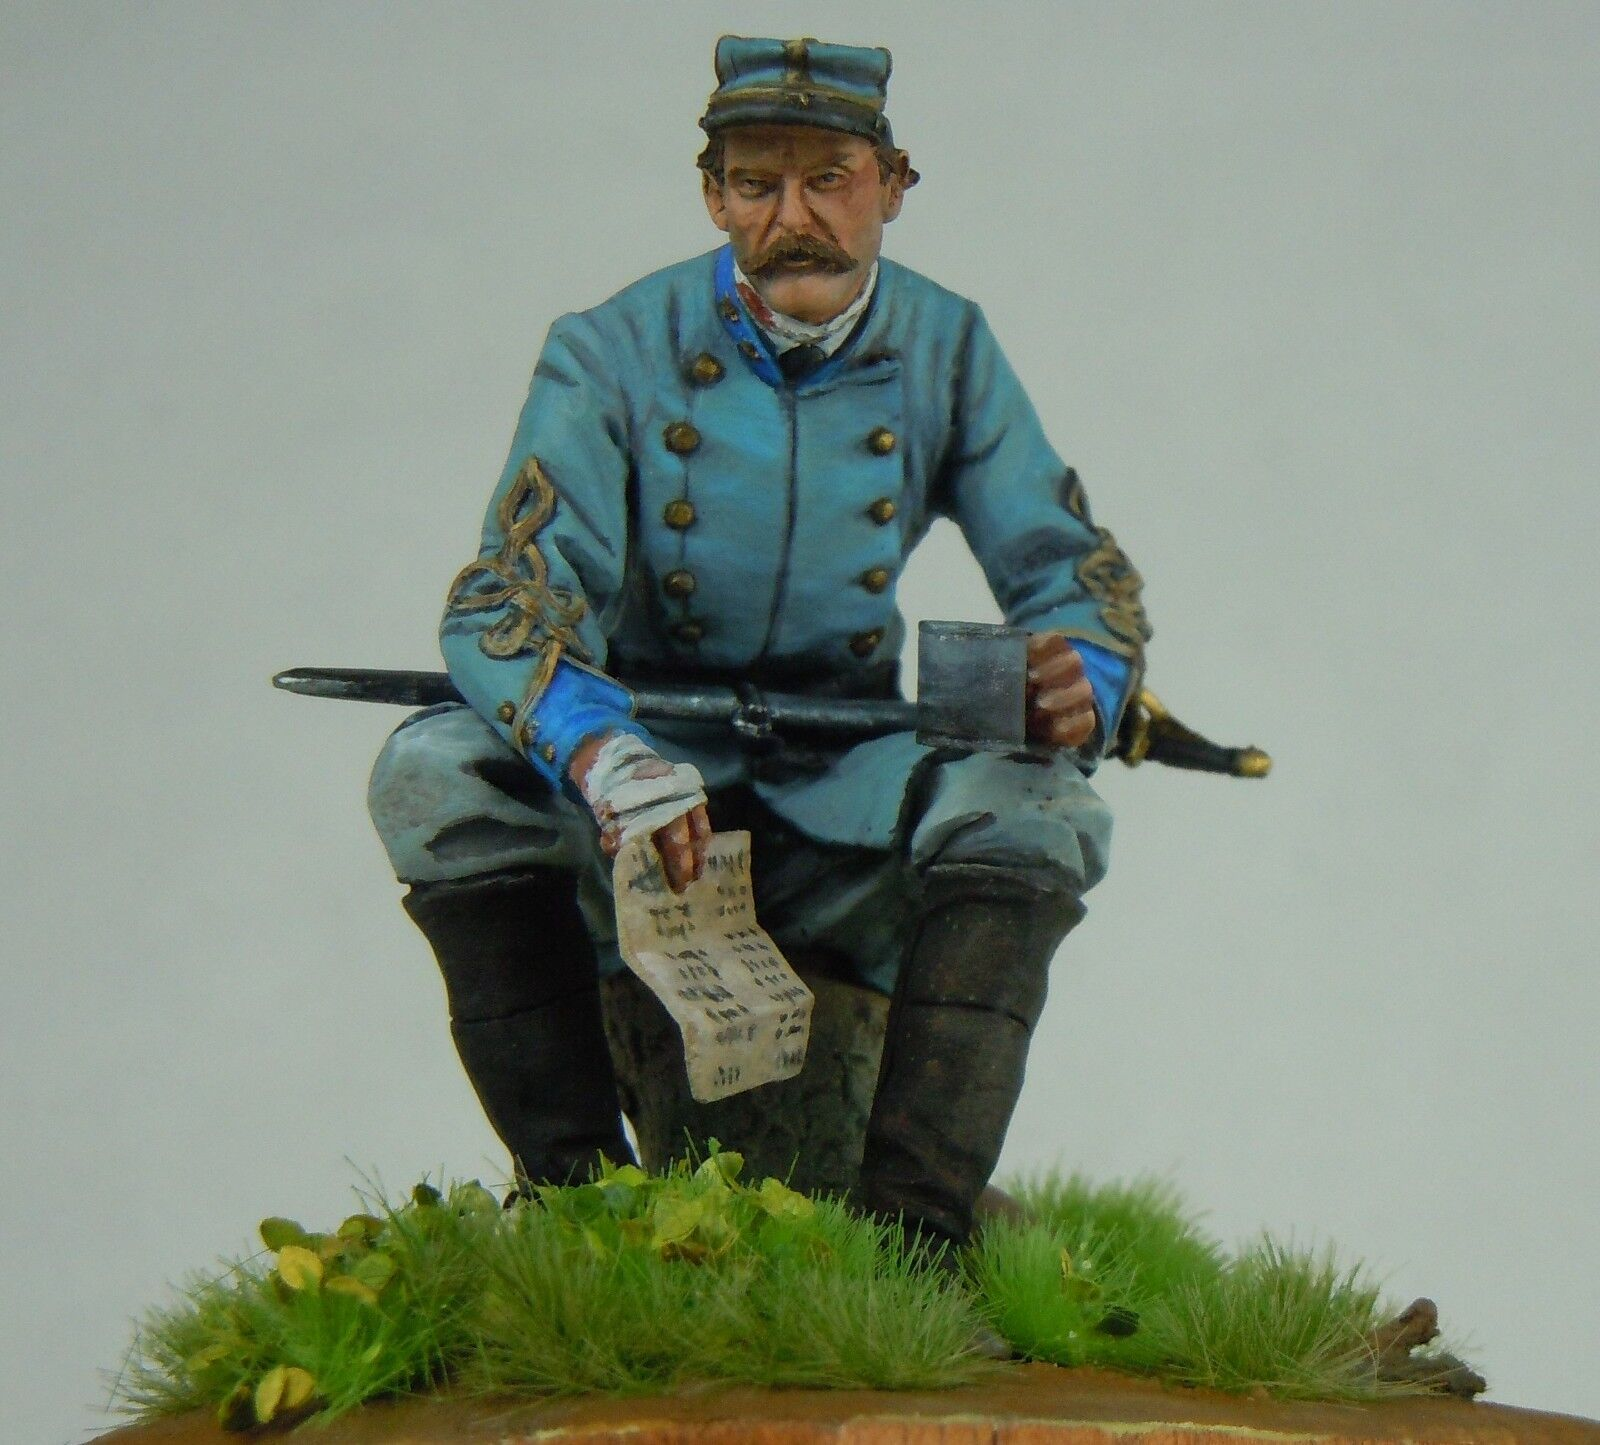 Confederate Officer Model Hand Painted white metal Scale 75 figure Wooden Plinth